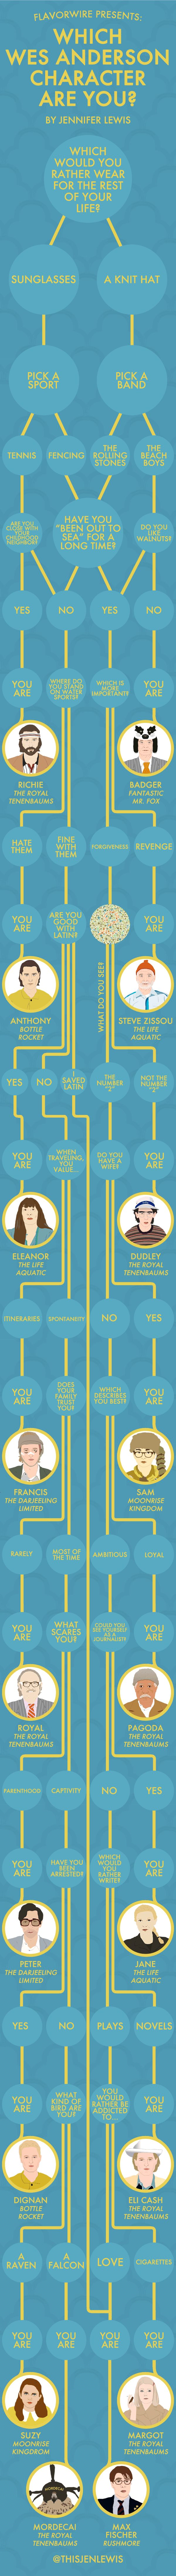 Which Wes Anderson Character Are You?